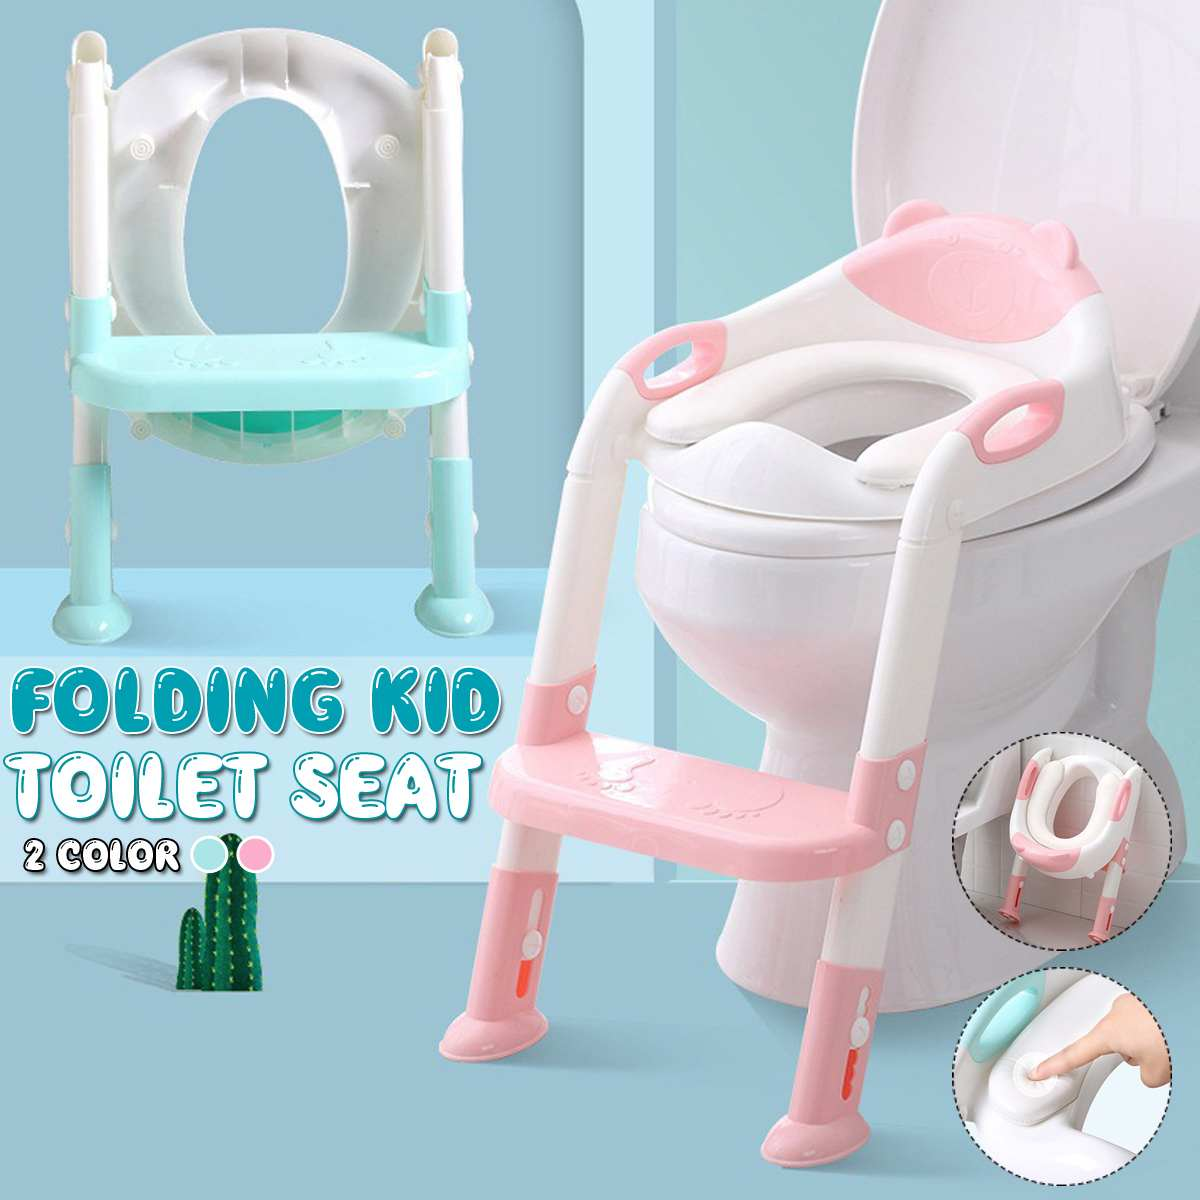 Folding Baby Potty Infant Kids Toilet Training Seat With Cushion Adjustable Ladder Portable Potty Training Seats For Children